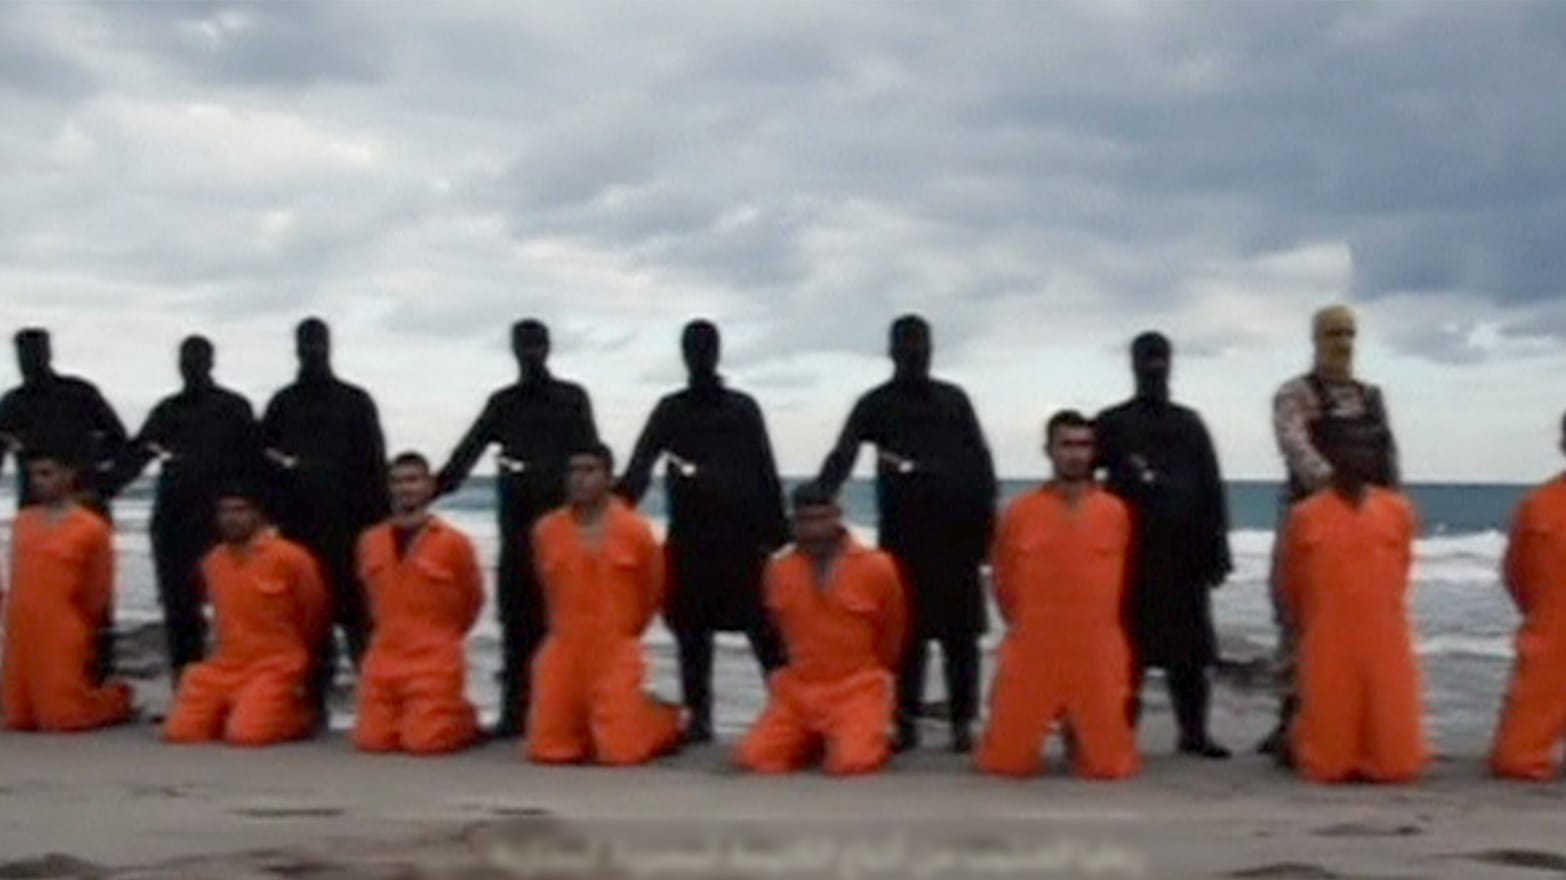 Will It Take The End of the World For Obama To Recognize ISIS As